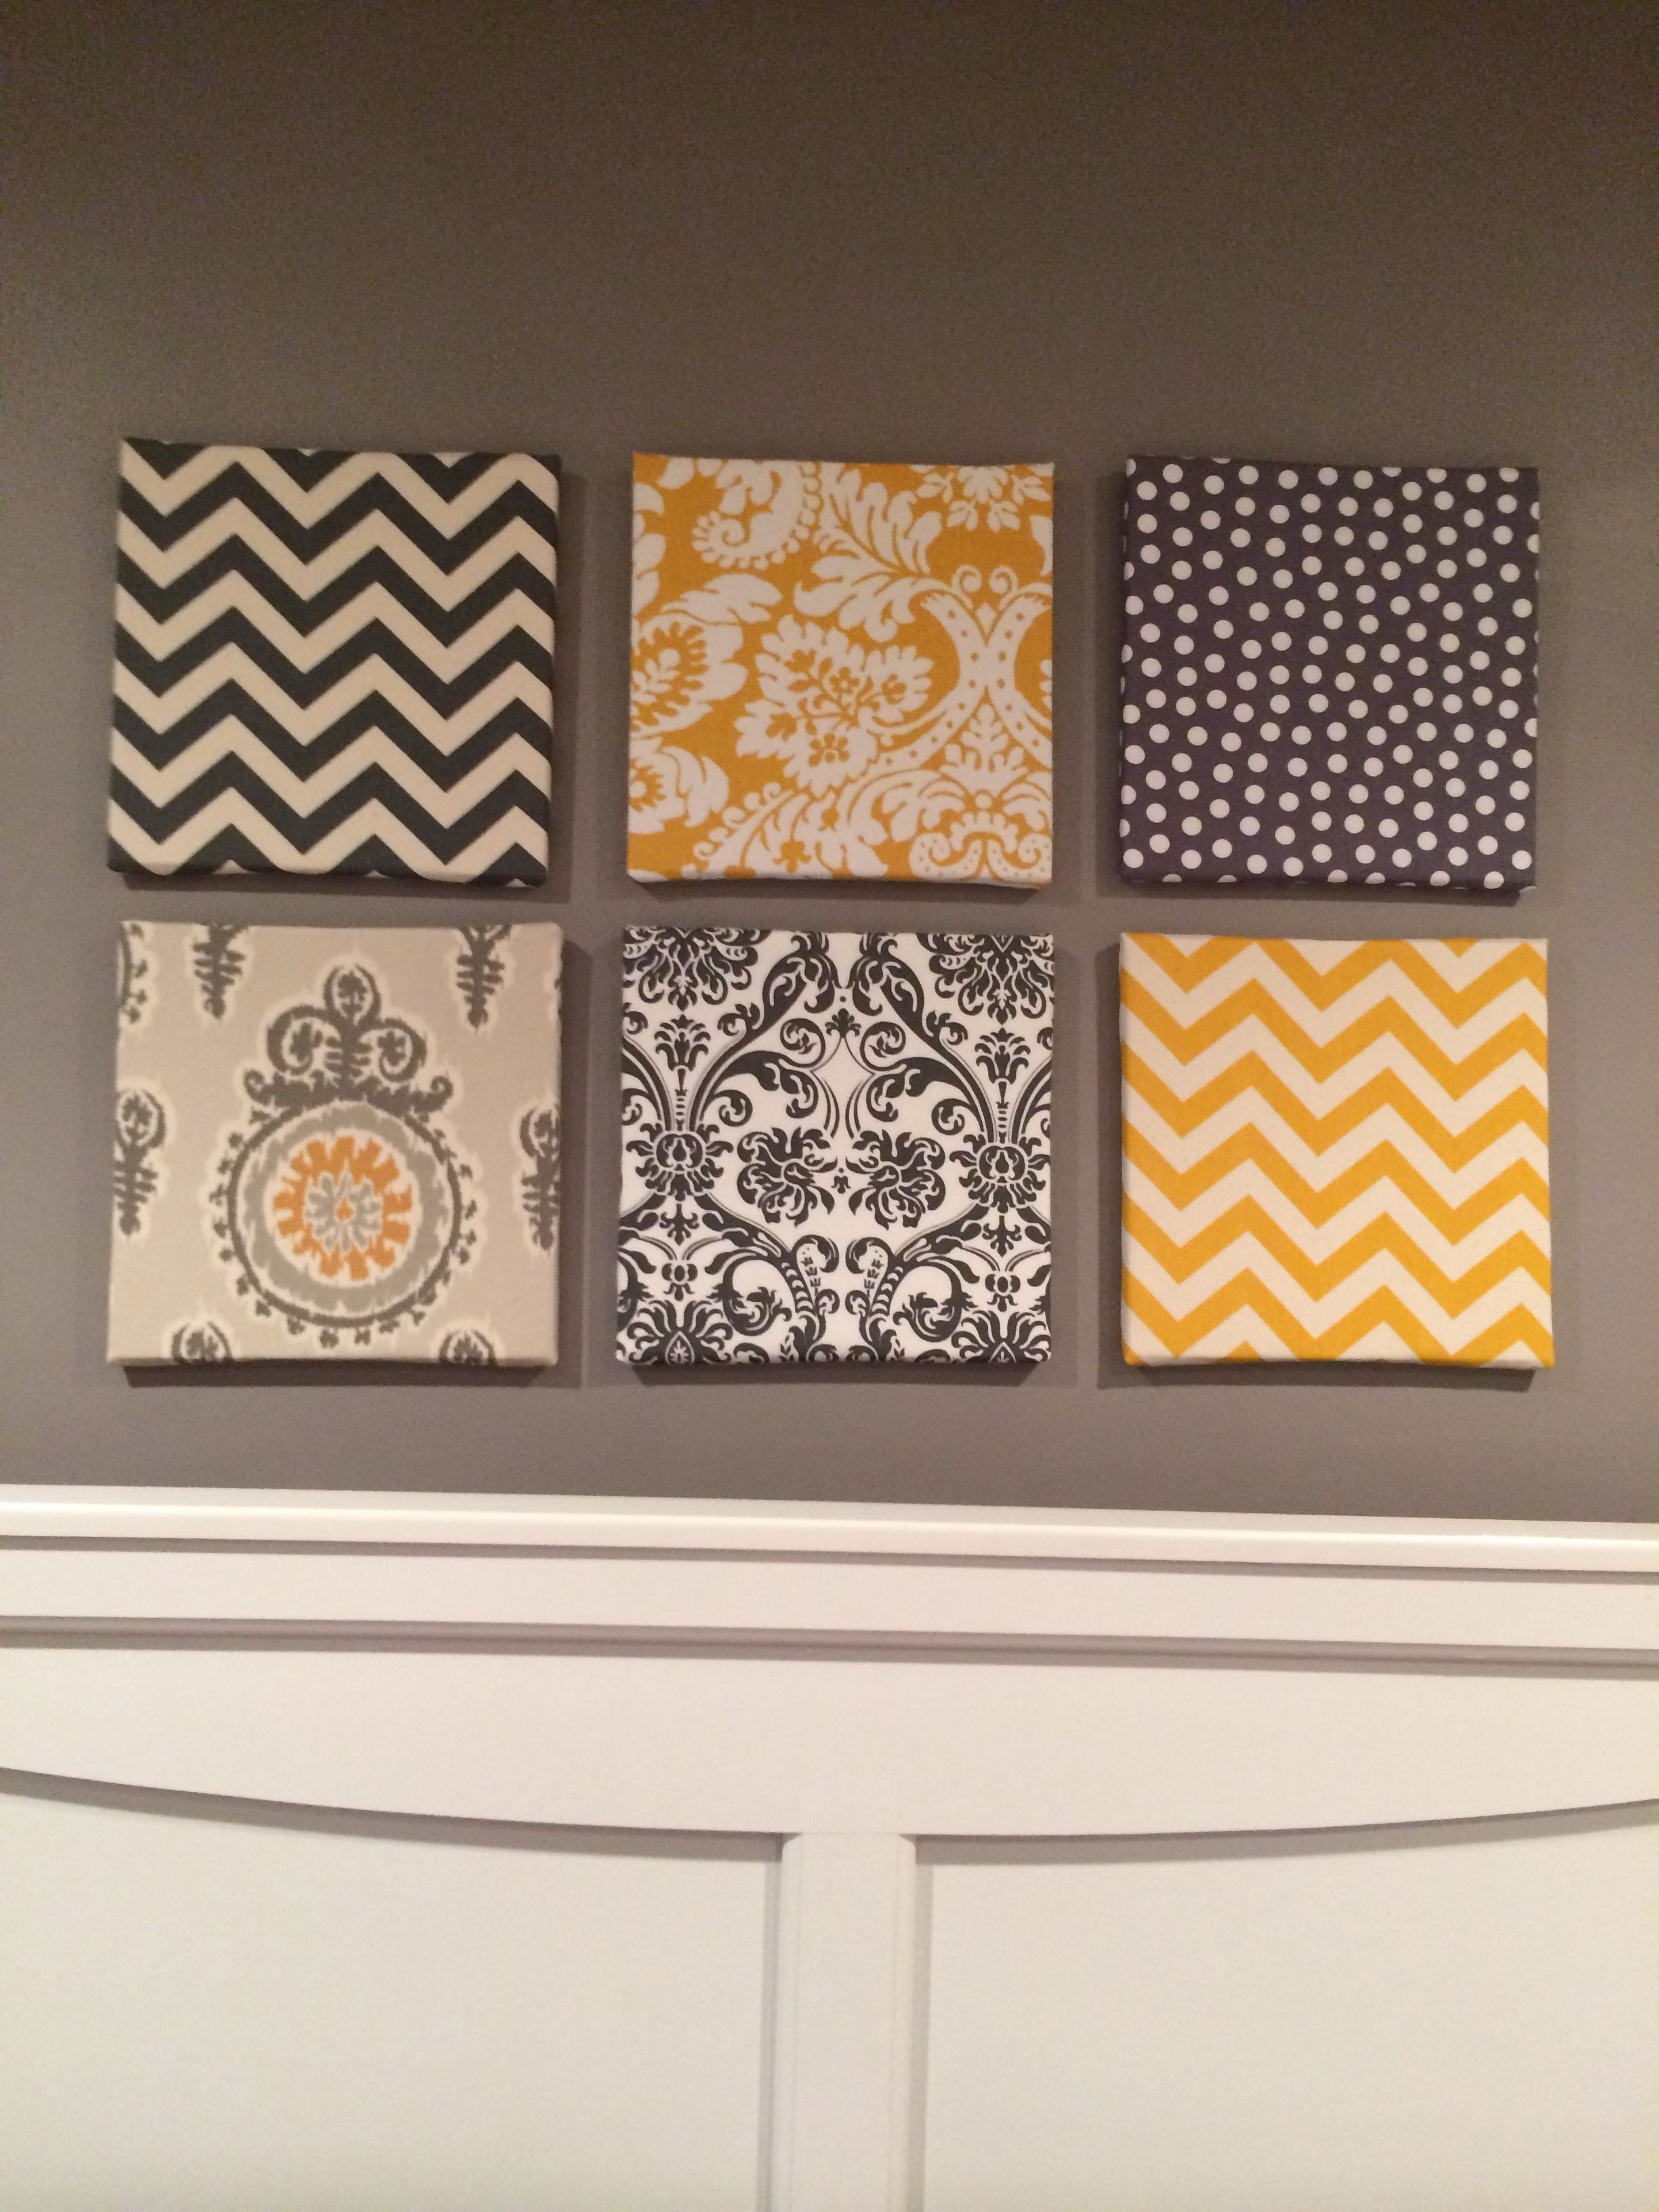 My Fabric Over Canvas Wall Art For My Gray And Yellow Themed Room Regarding Well Known Fabric Panel Wall Art With Embellishments (View 8 of 15)